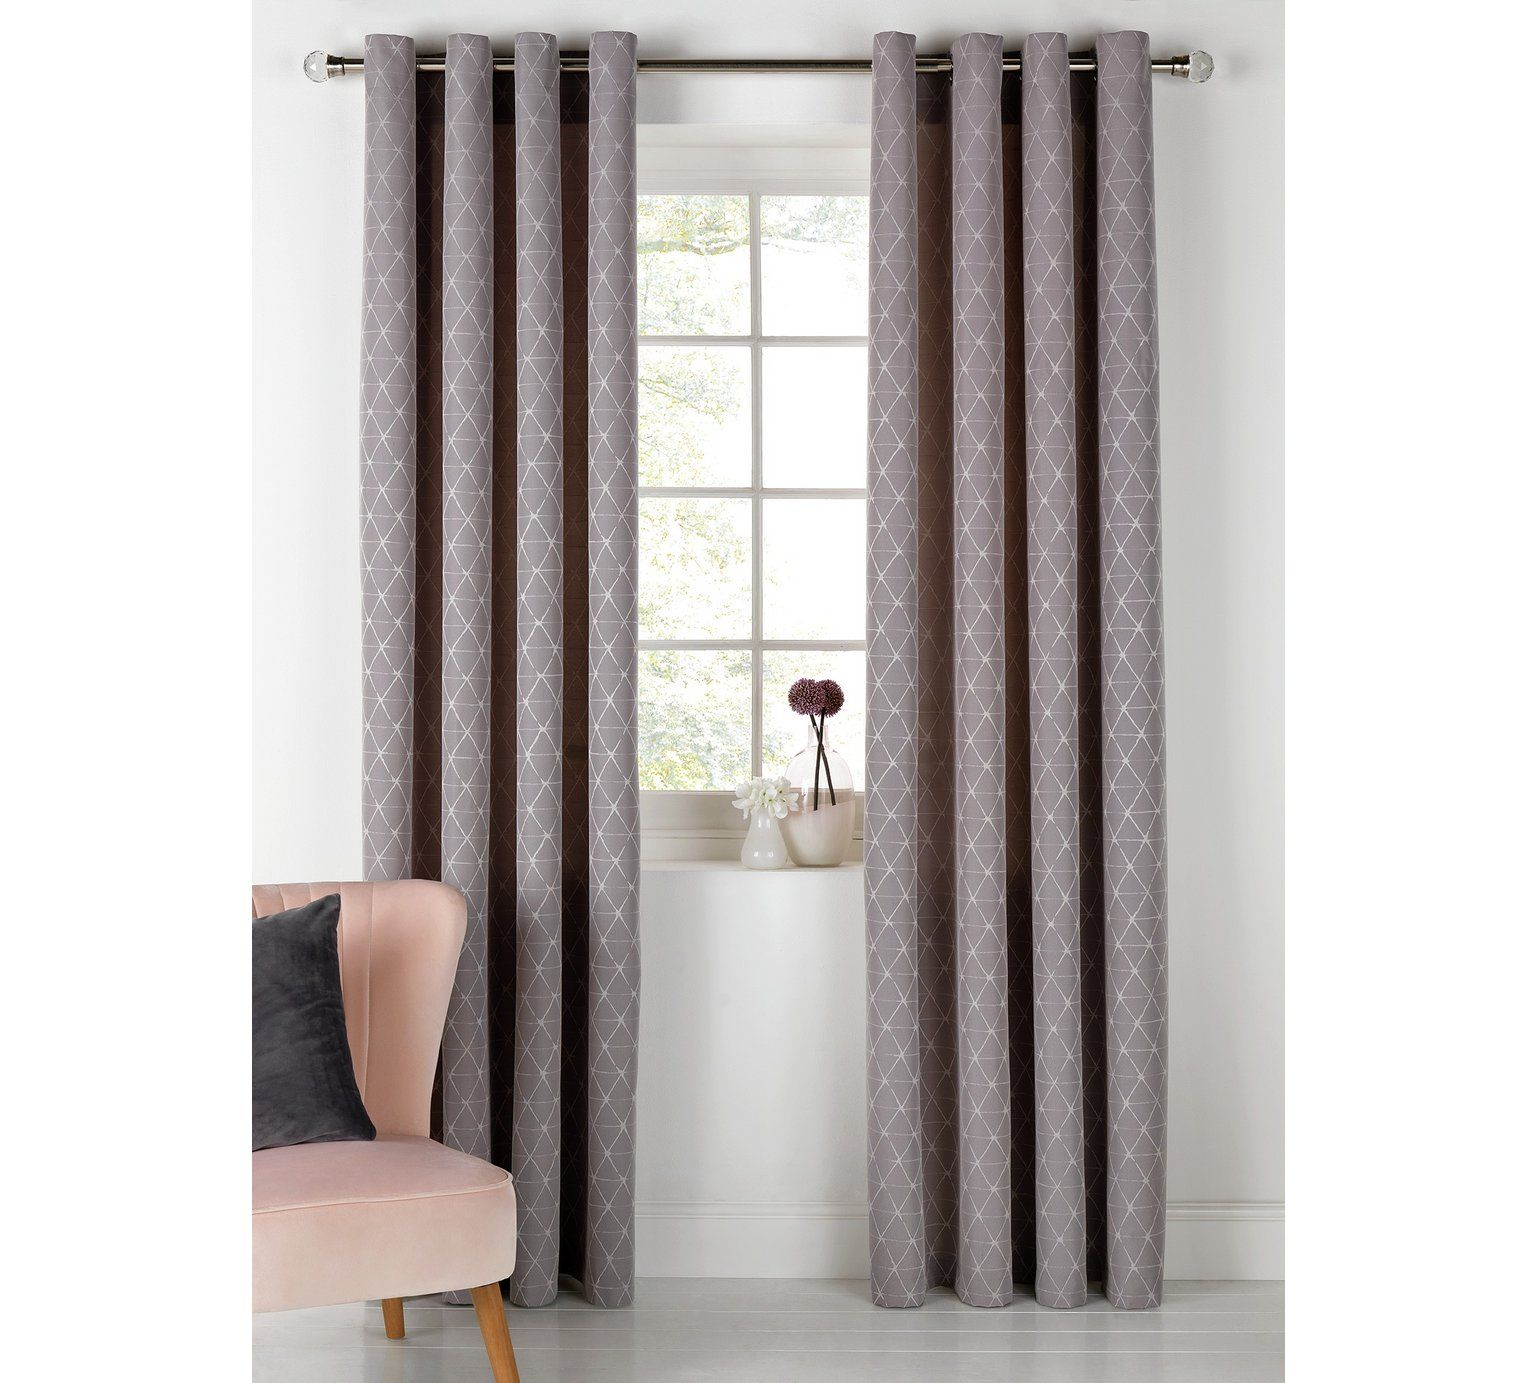 Buy heart of house askel jaquard lined curtains xcm grey at